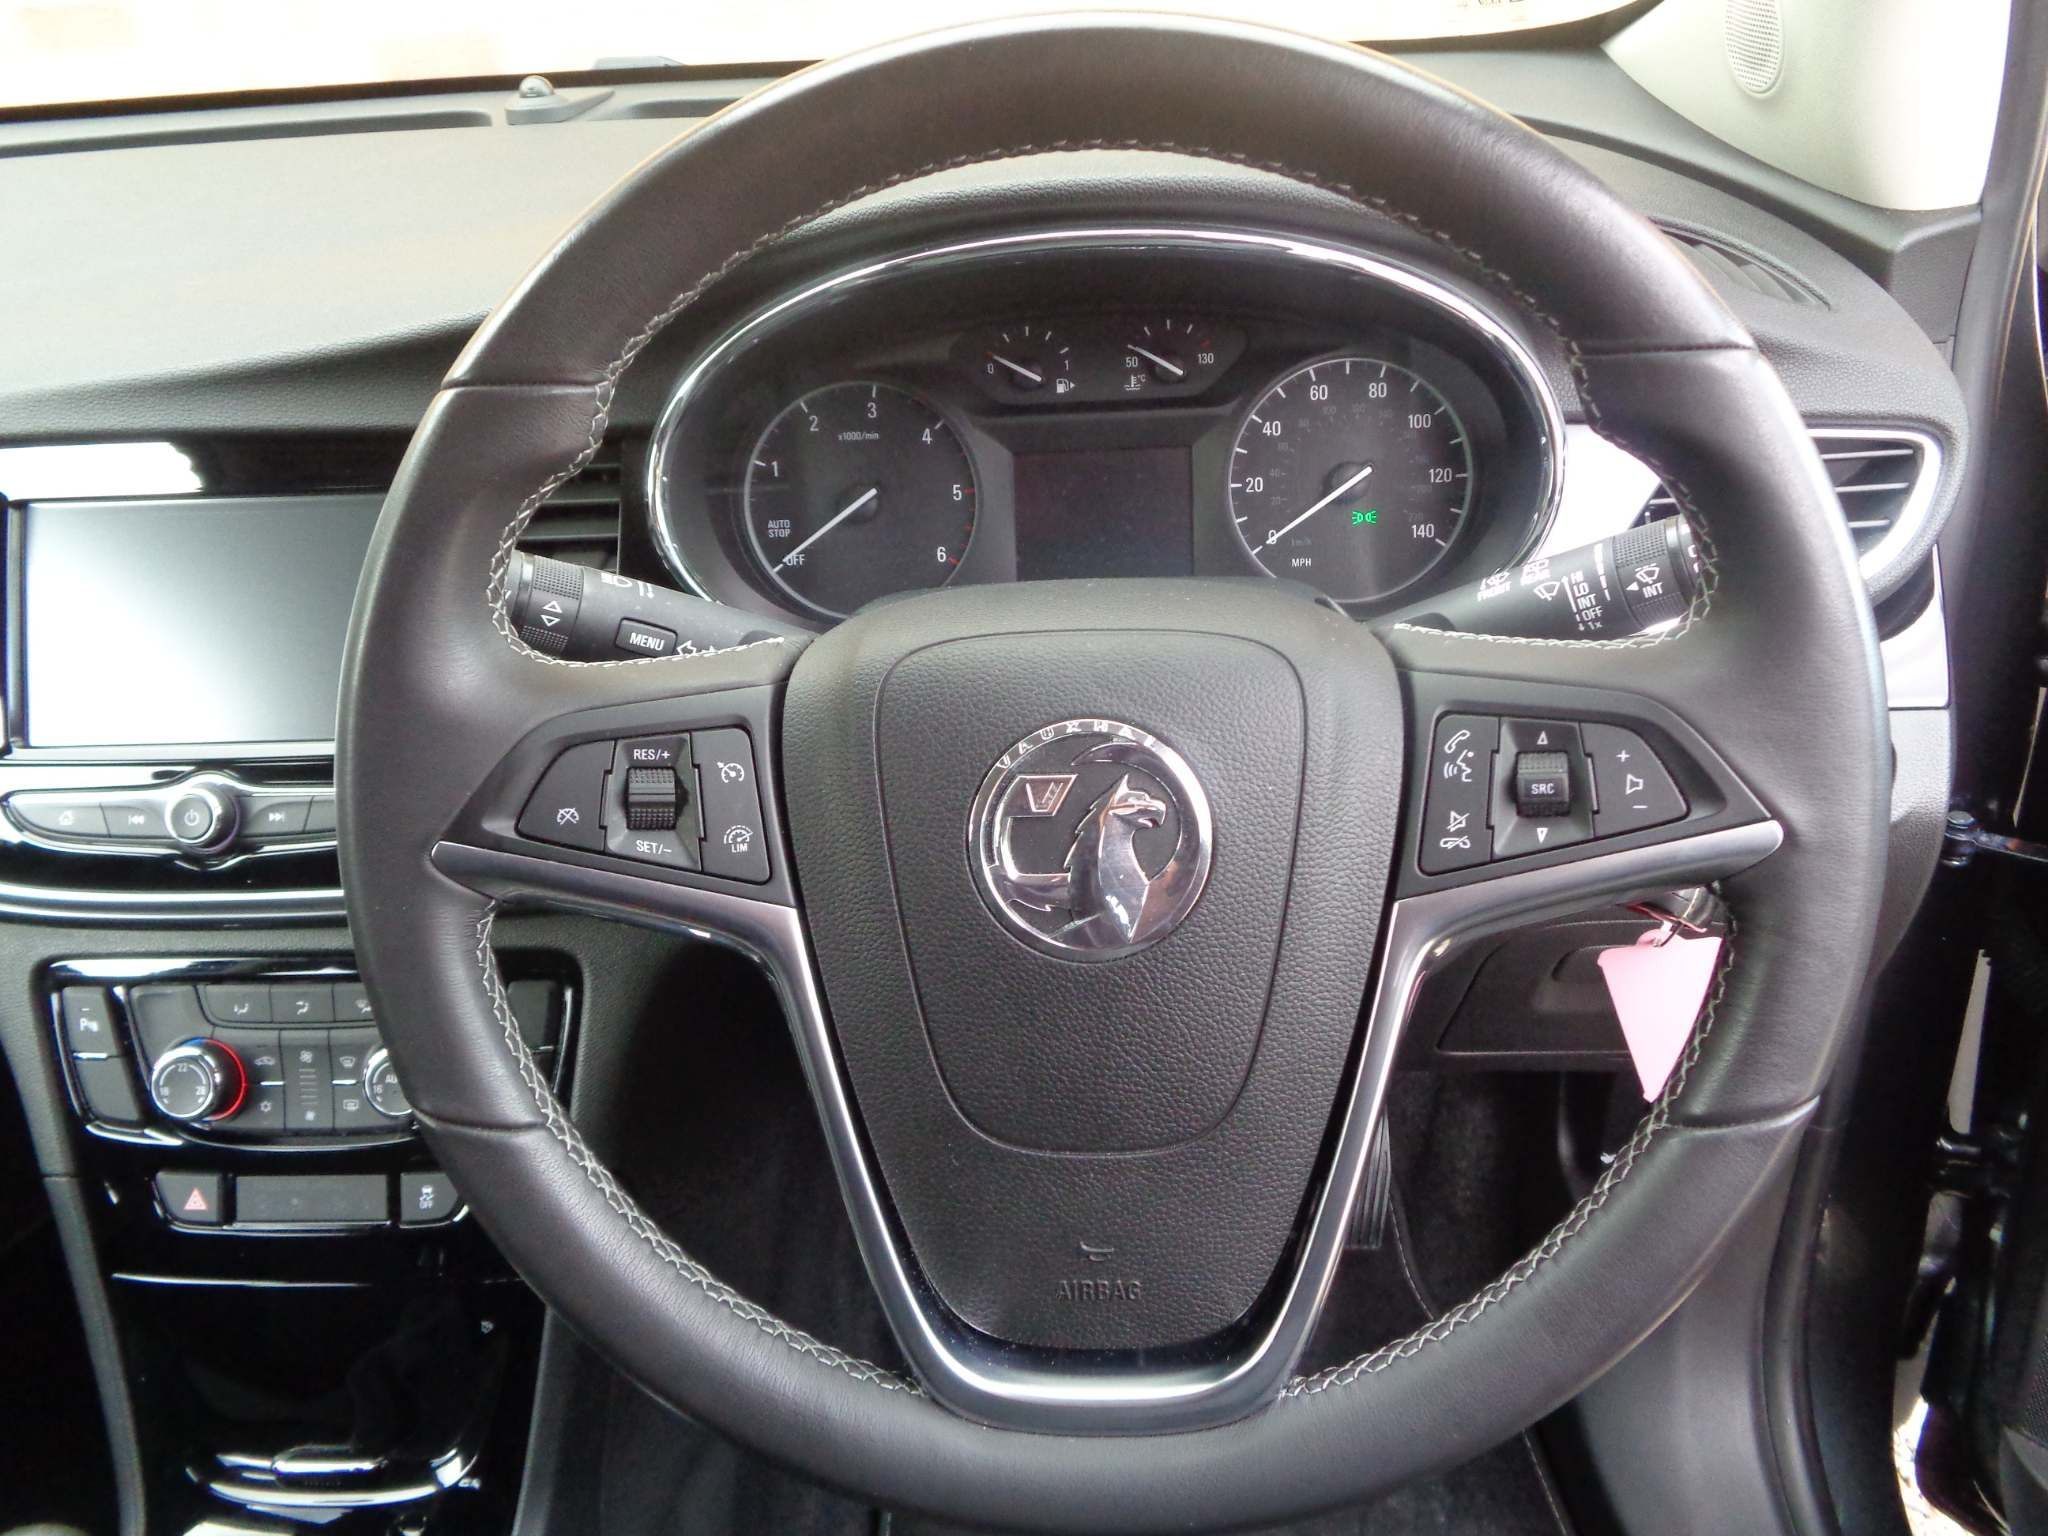 http://pictures2.autotrader.co.uk/imgser-uk/servlet/media?id=967b5ca2892a41fca2e307e29701db4a